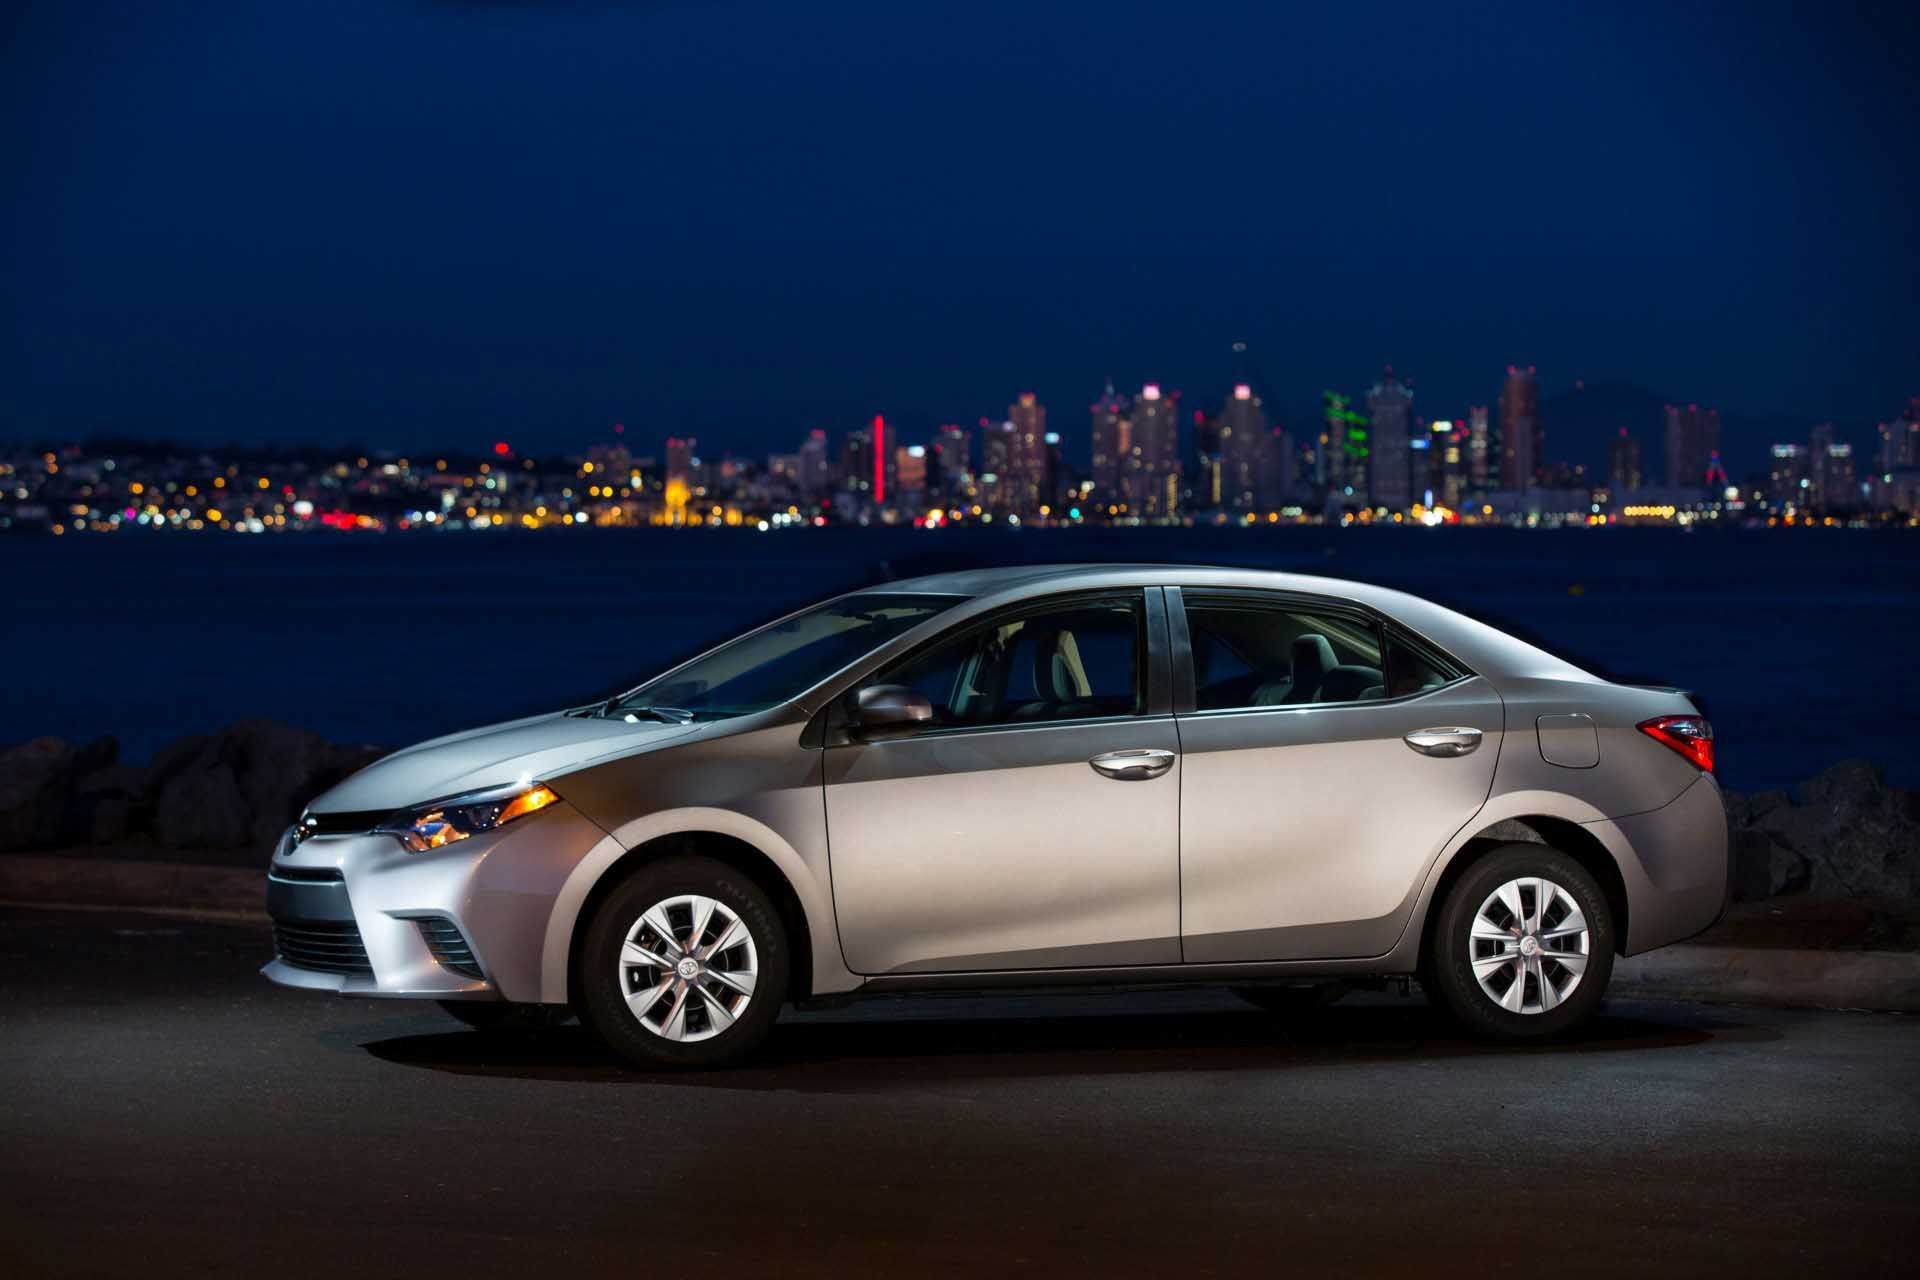 10 Attractive 2014 Toyota Corolla Night Views